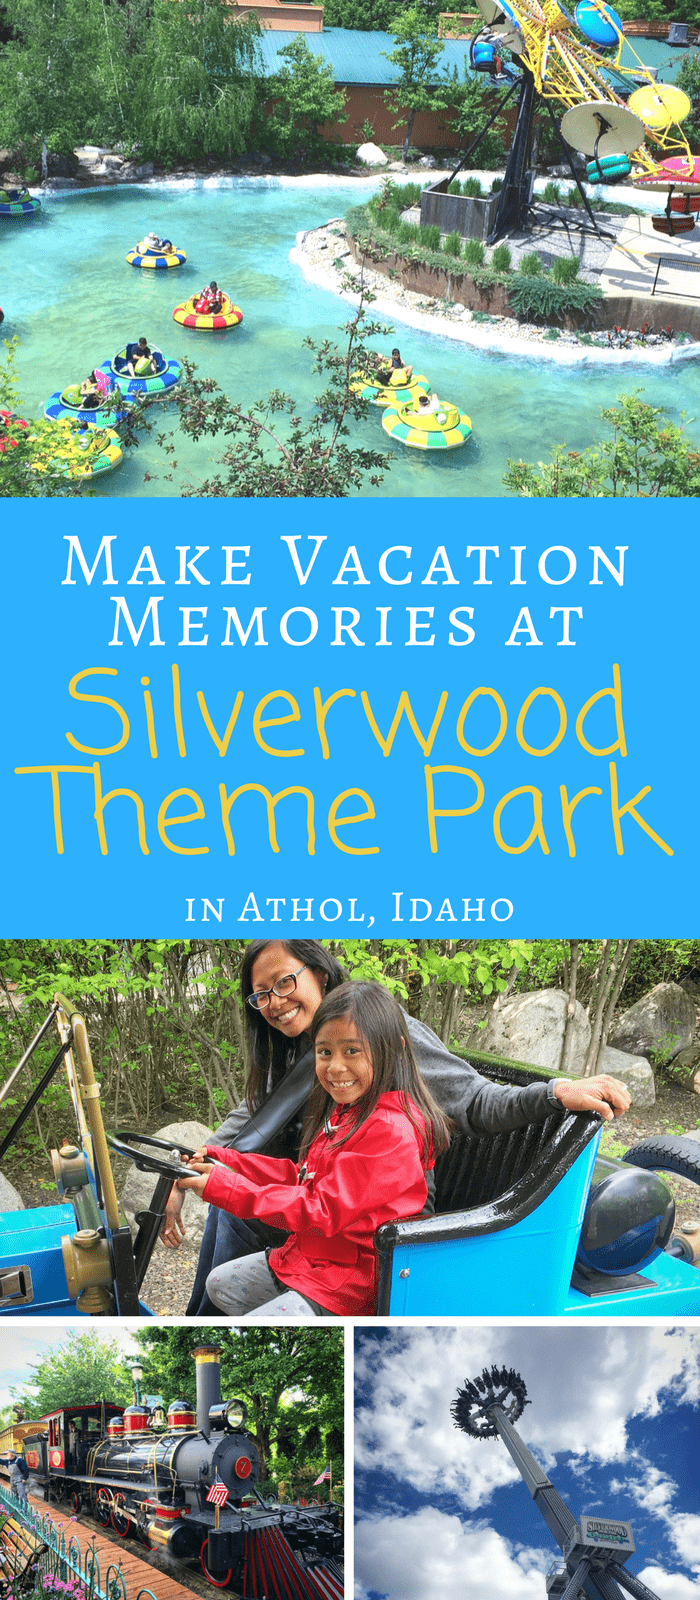 Silverwood Theme Park - Fun for Families - From tiny tots to adrenaline seeking adults, there is a ride or show here for you to enjoy. Start making plans for your next family vacation